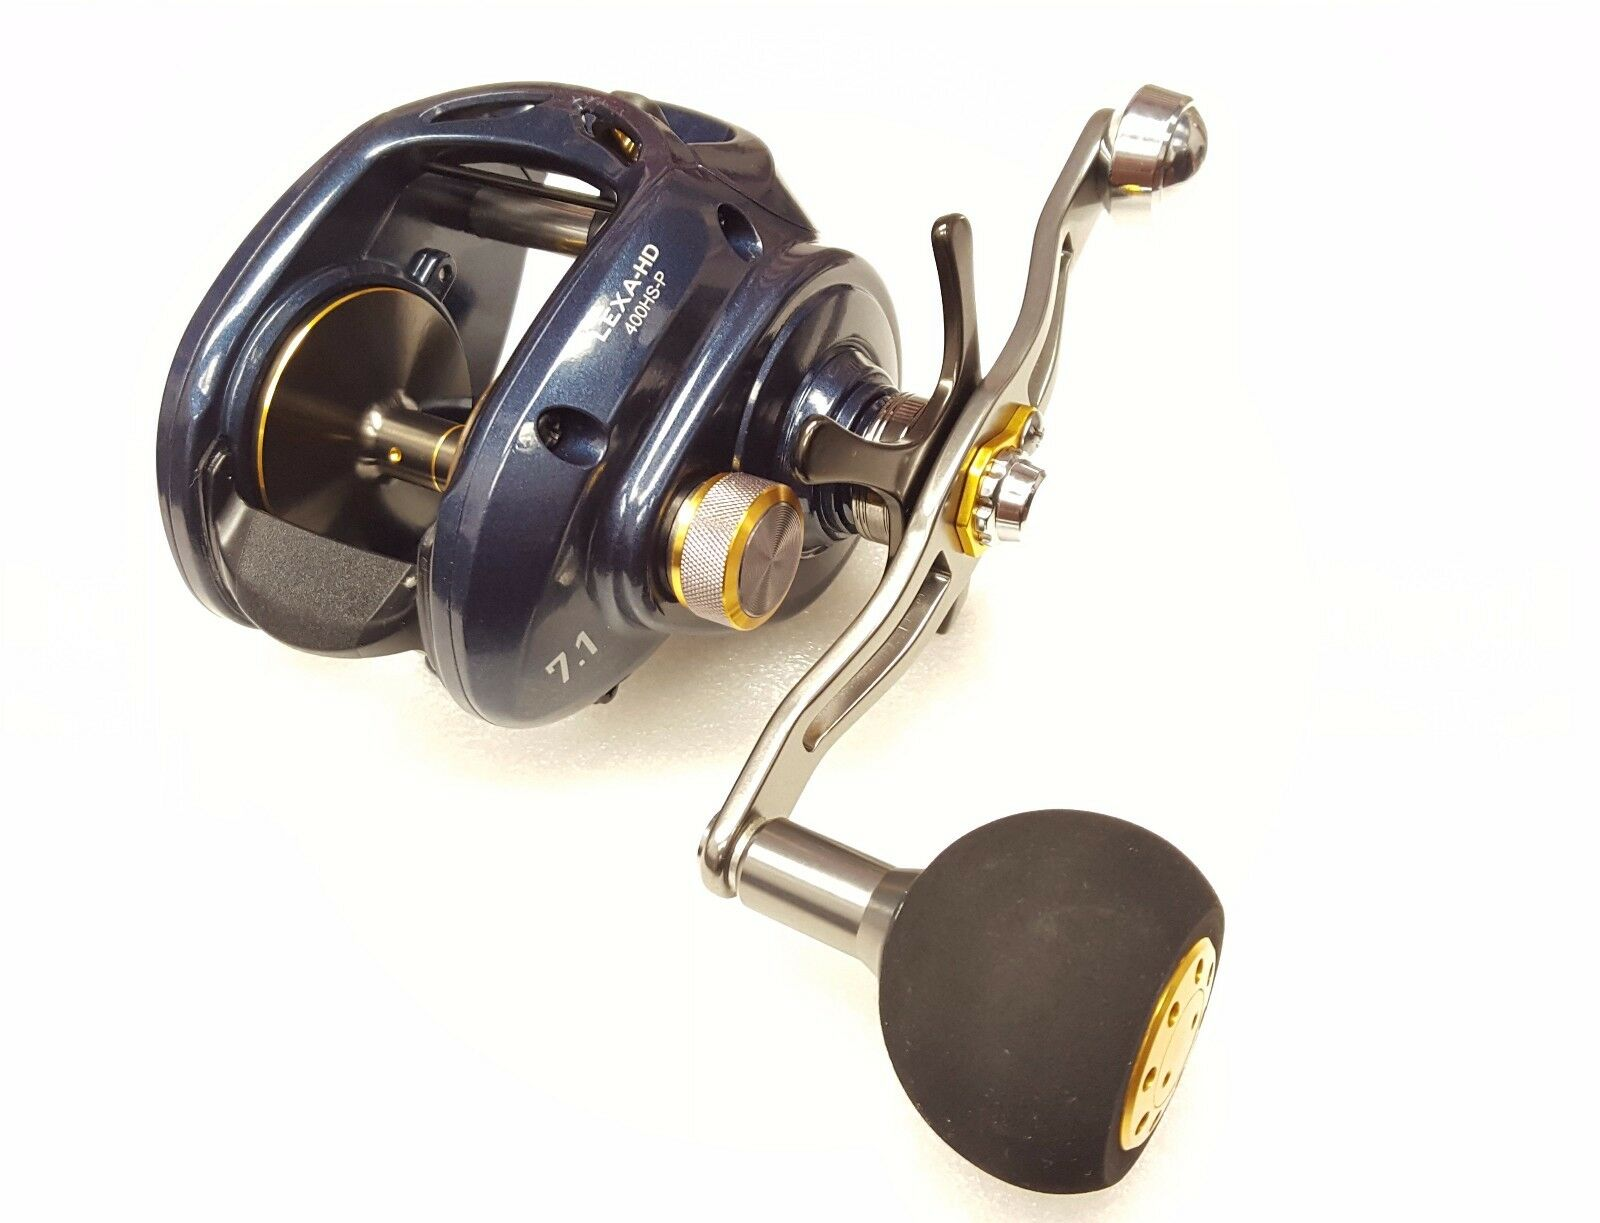 977b6eced58 Daiwa Lexa HD 400 High Speed Right Hand Power Baitcast Reel 7.1:1 LEXA-